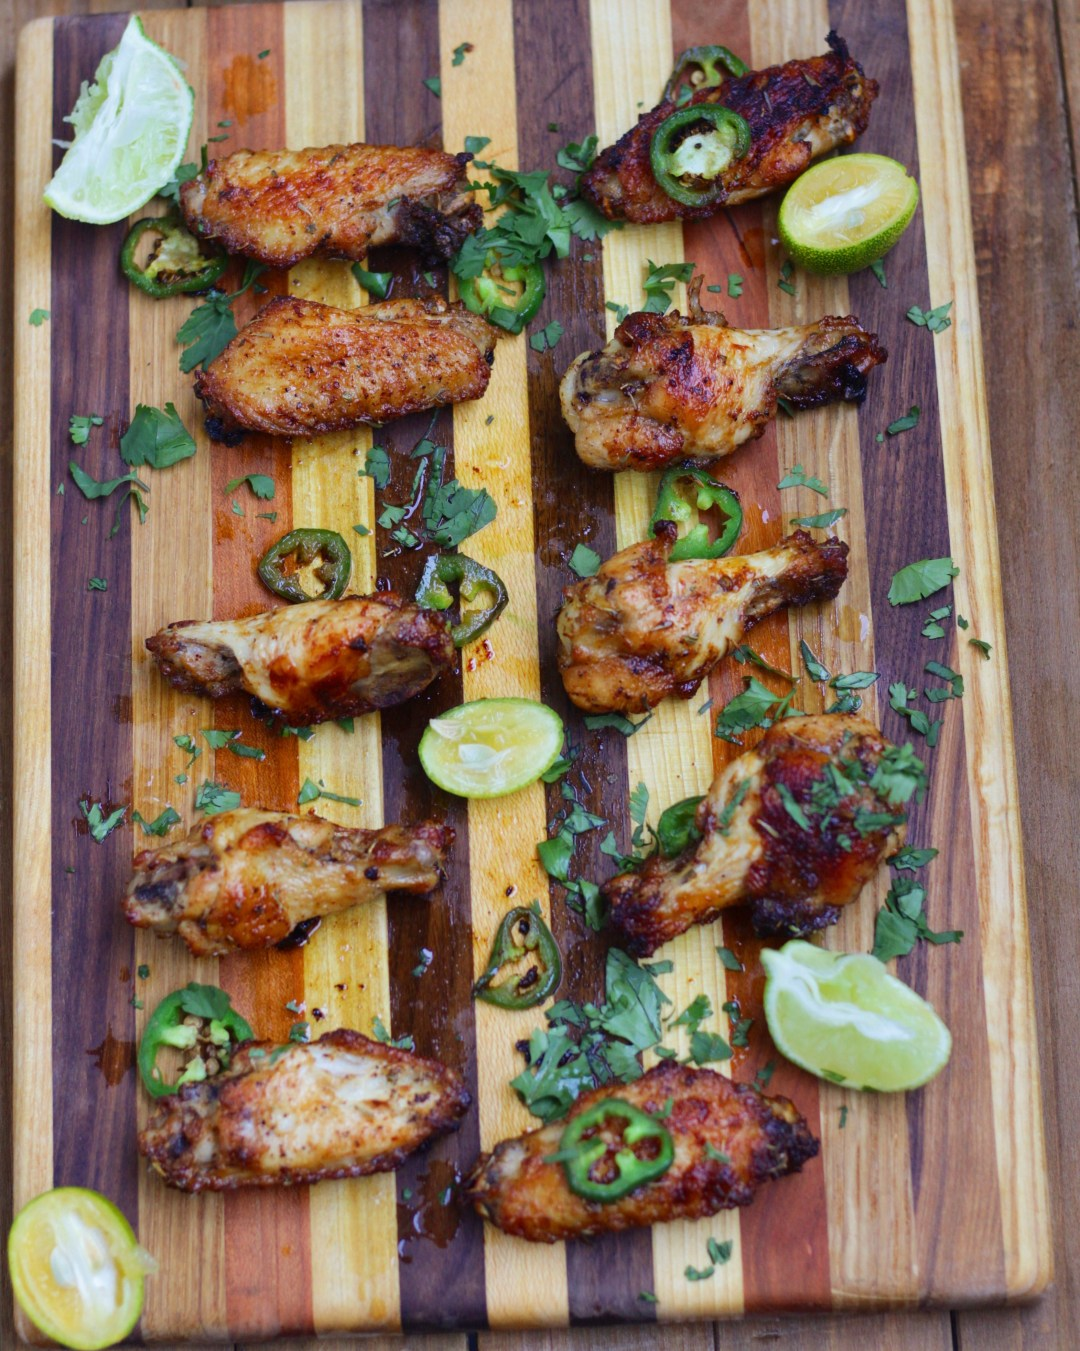 These Creole butter chicken wings are seasoned to perfection! Spicy, zesty, and full of flavor!